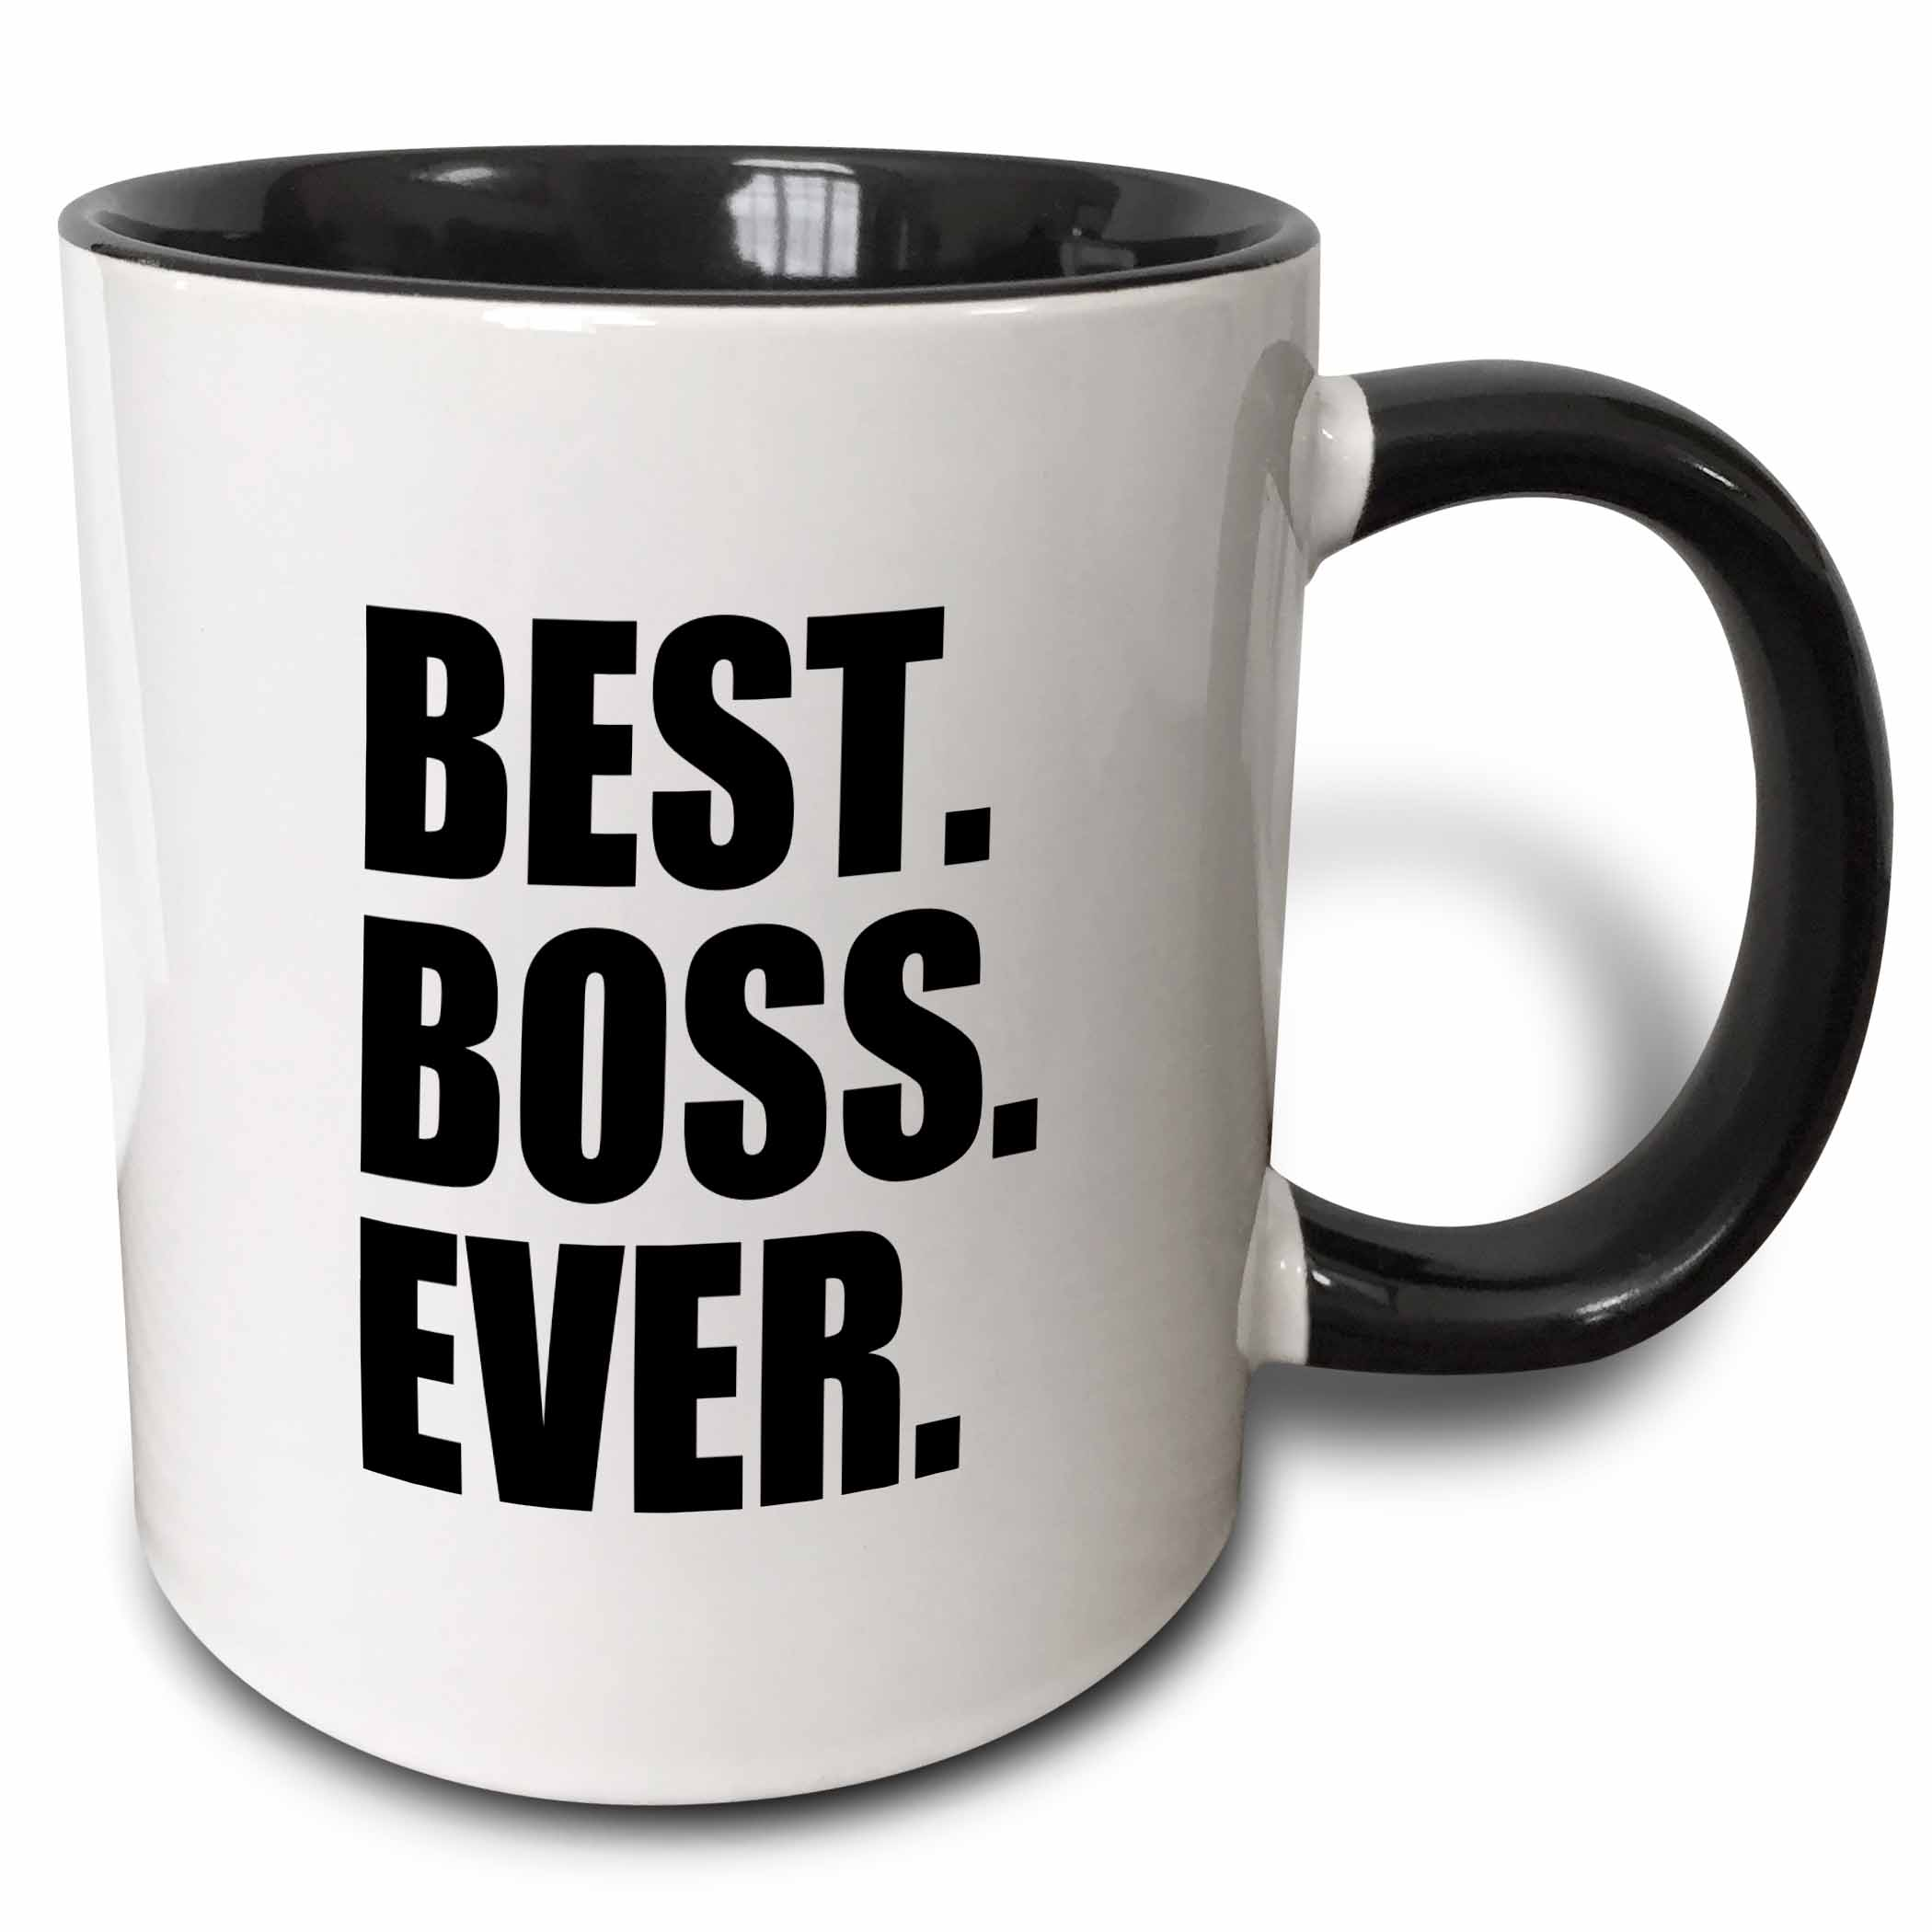 3drose Best Boss Ever Fun Funny Humorous Gifts For The